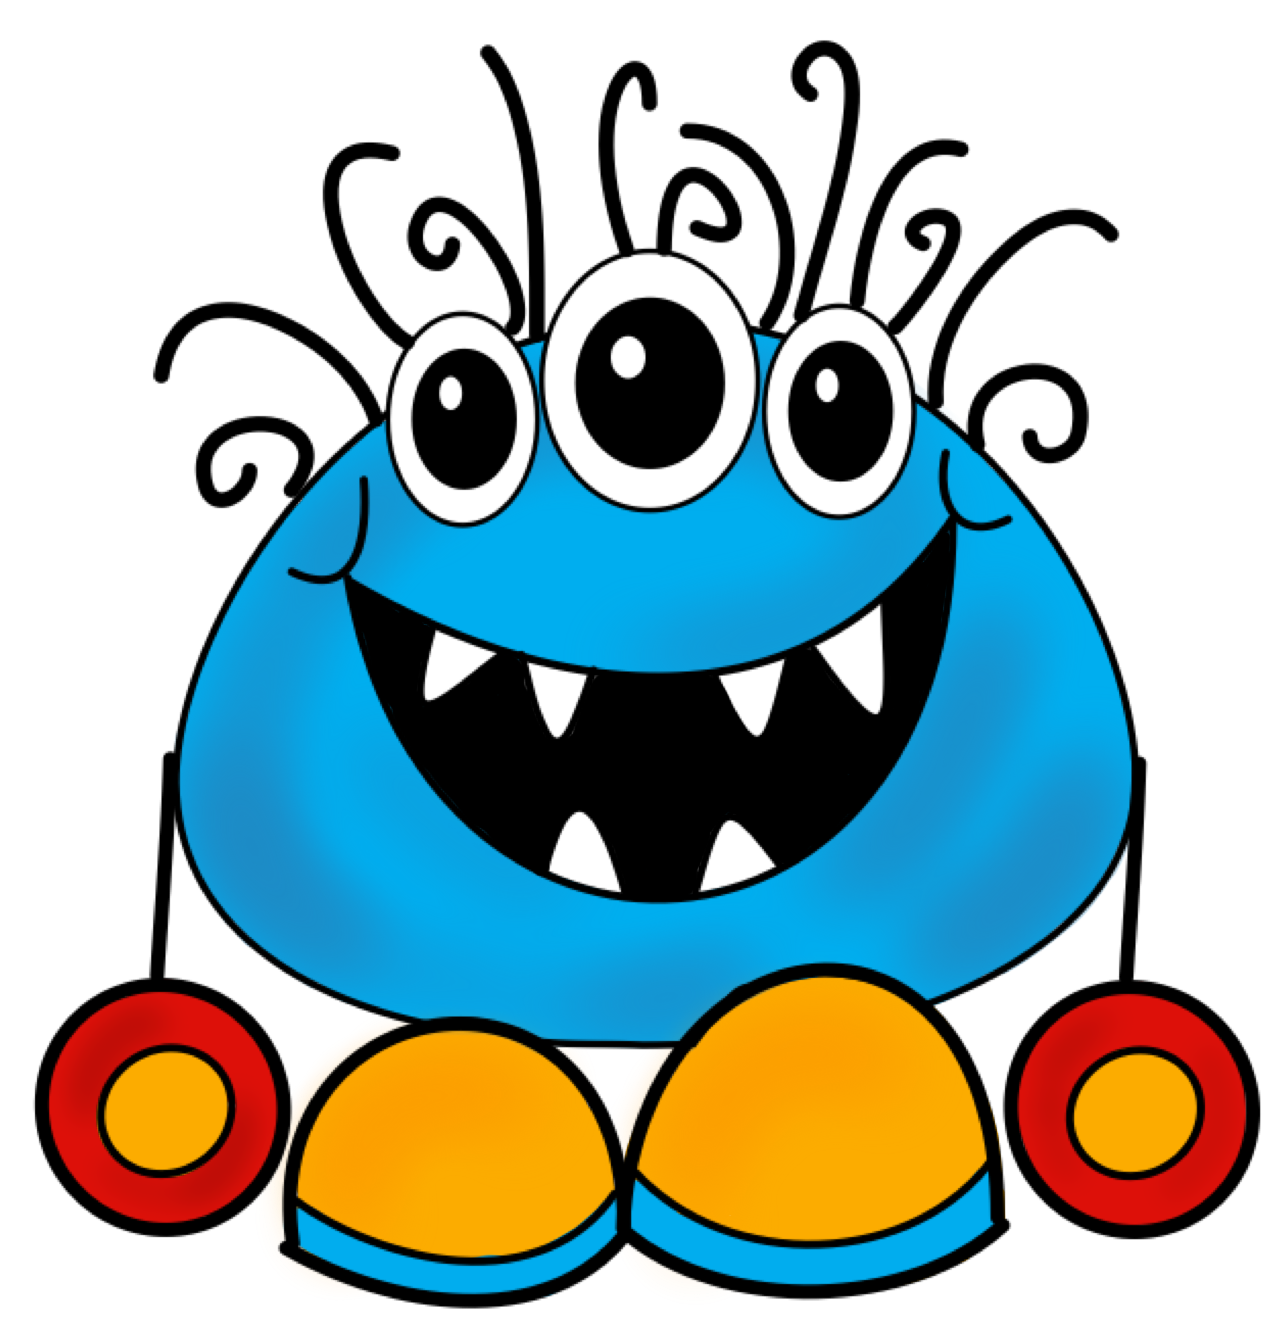 Uncategorized Monster Pictures For Kids monster clipart for kids goofy clip art image the creative chalkboard day 2 freebie writing pages and new clipart